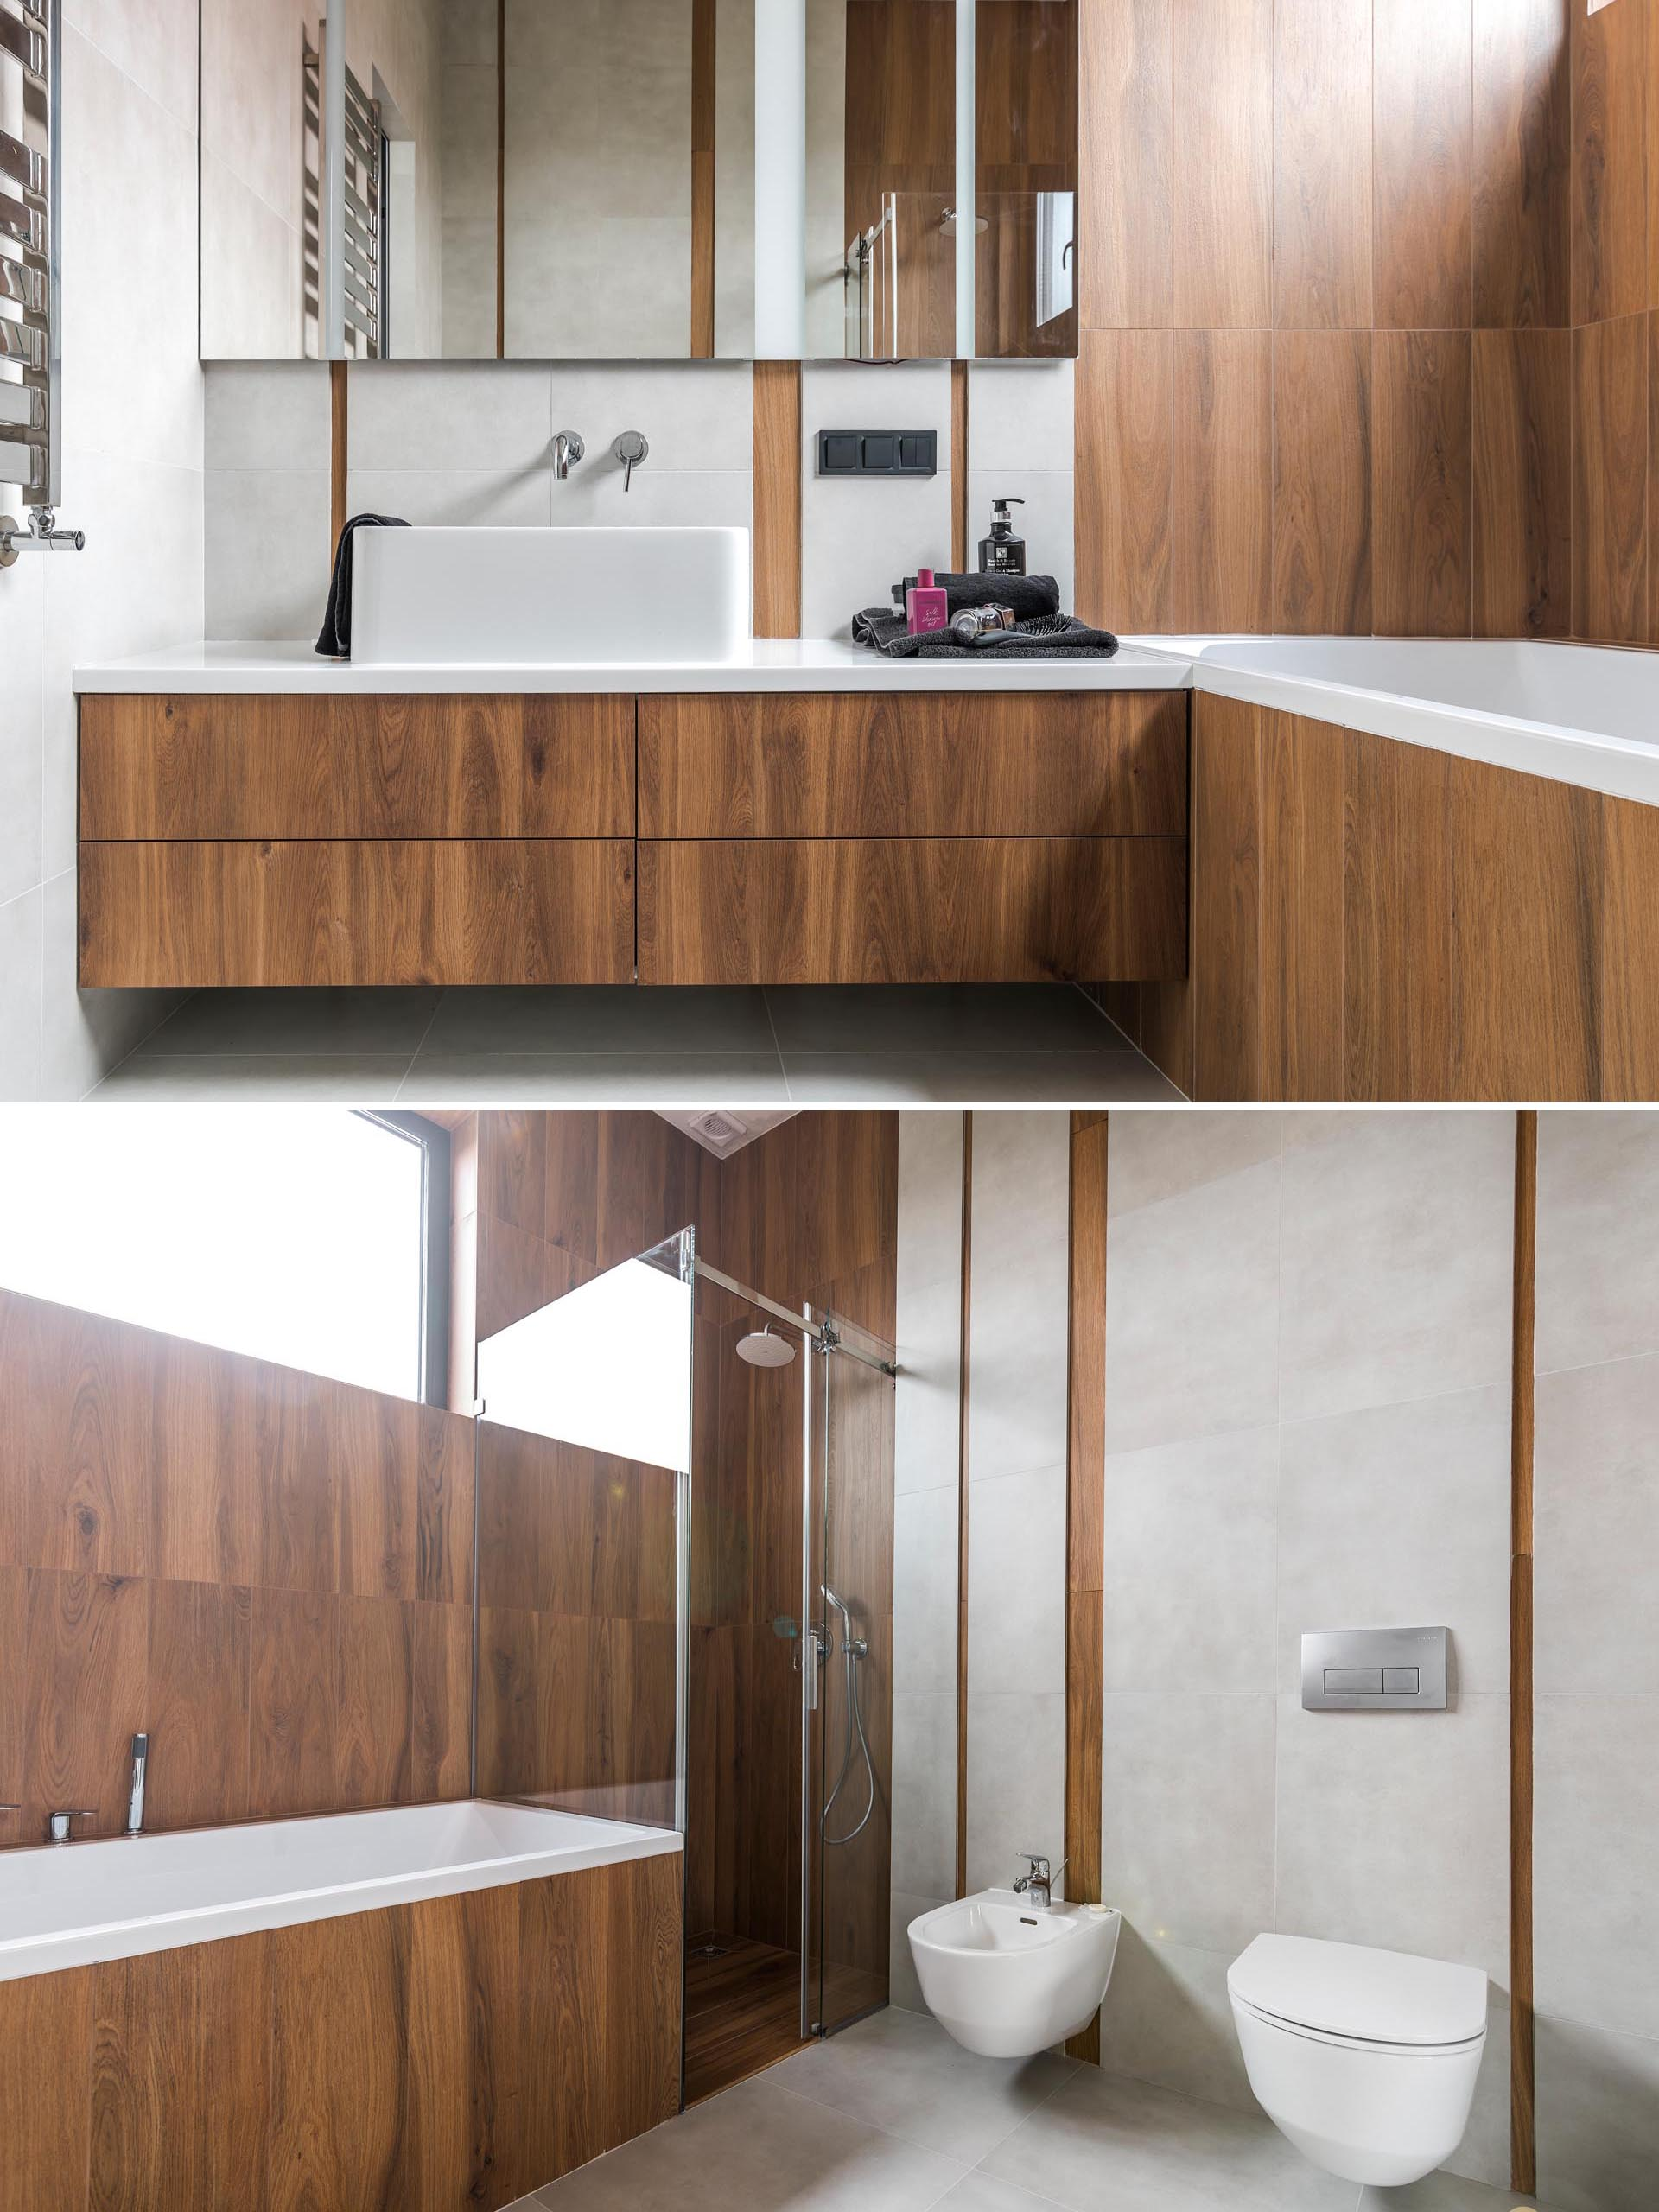 A modern wood-like tile covers a bathroom that also includes a white counter and sink.